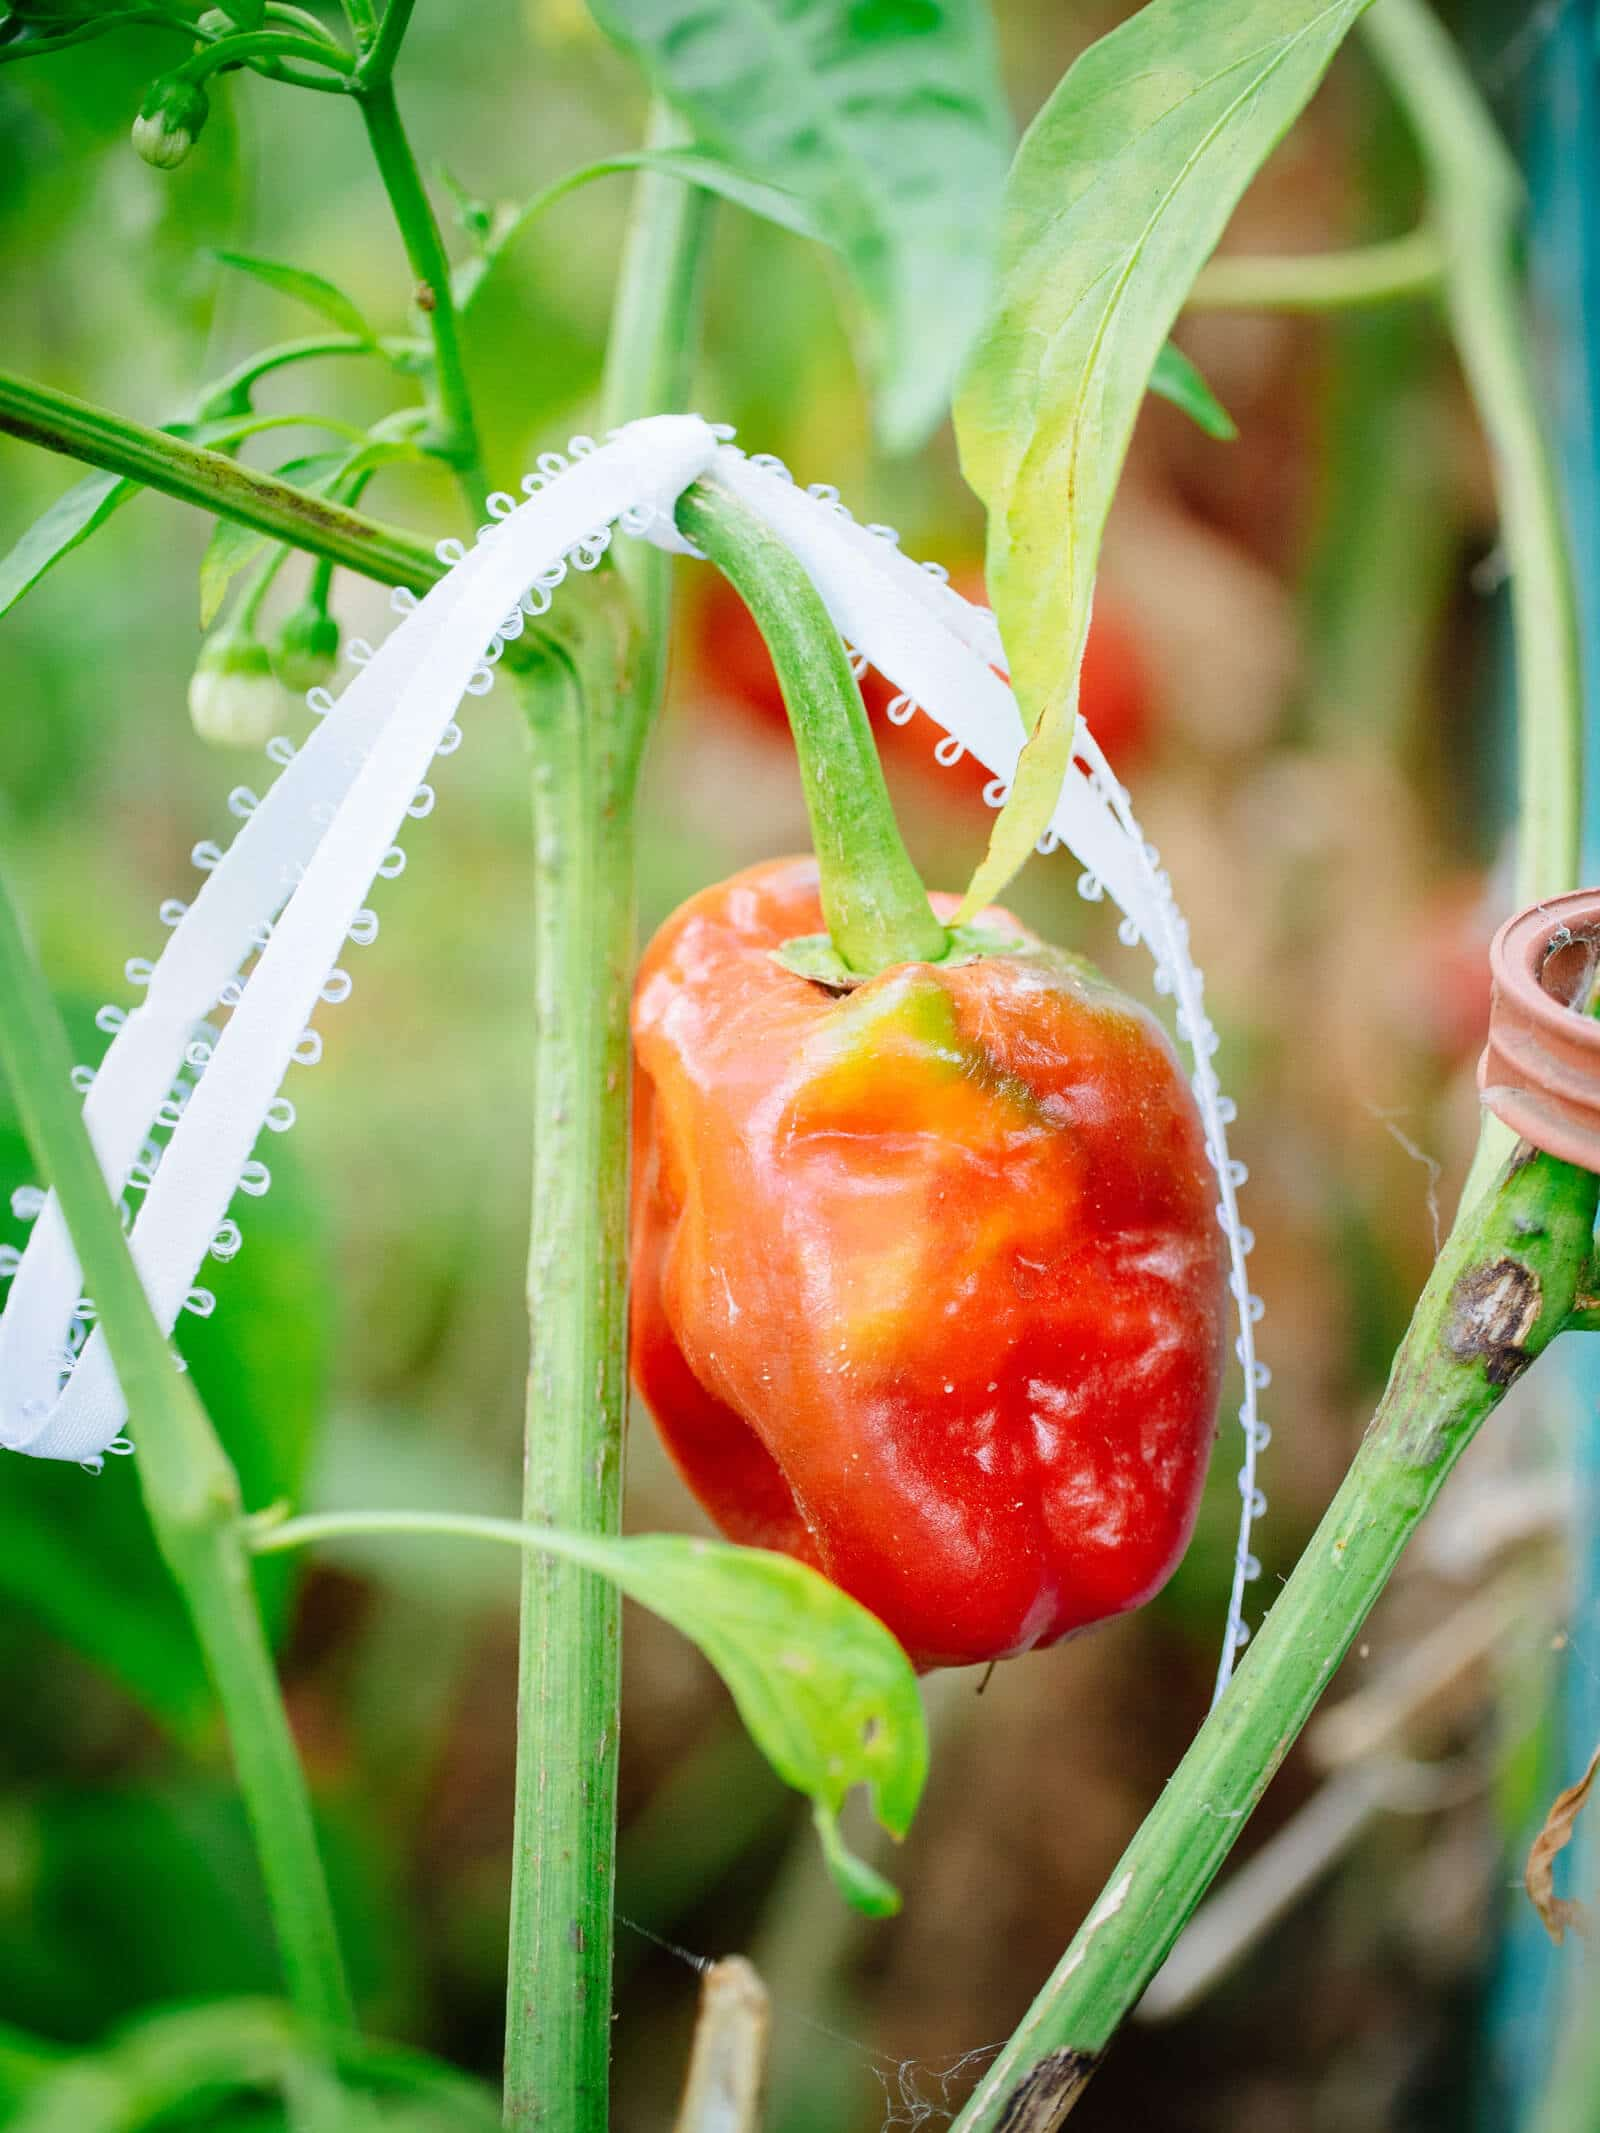 Marking the perfect pepper for seed saving